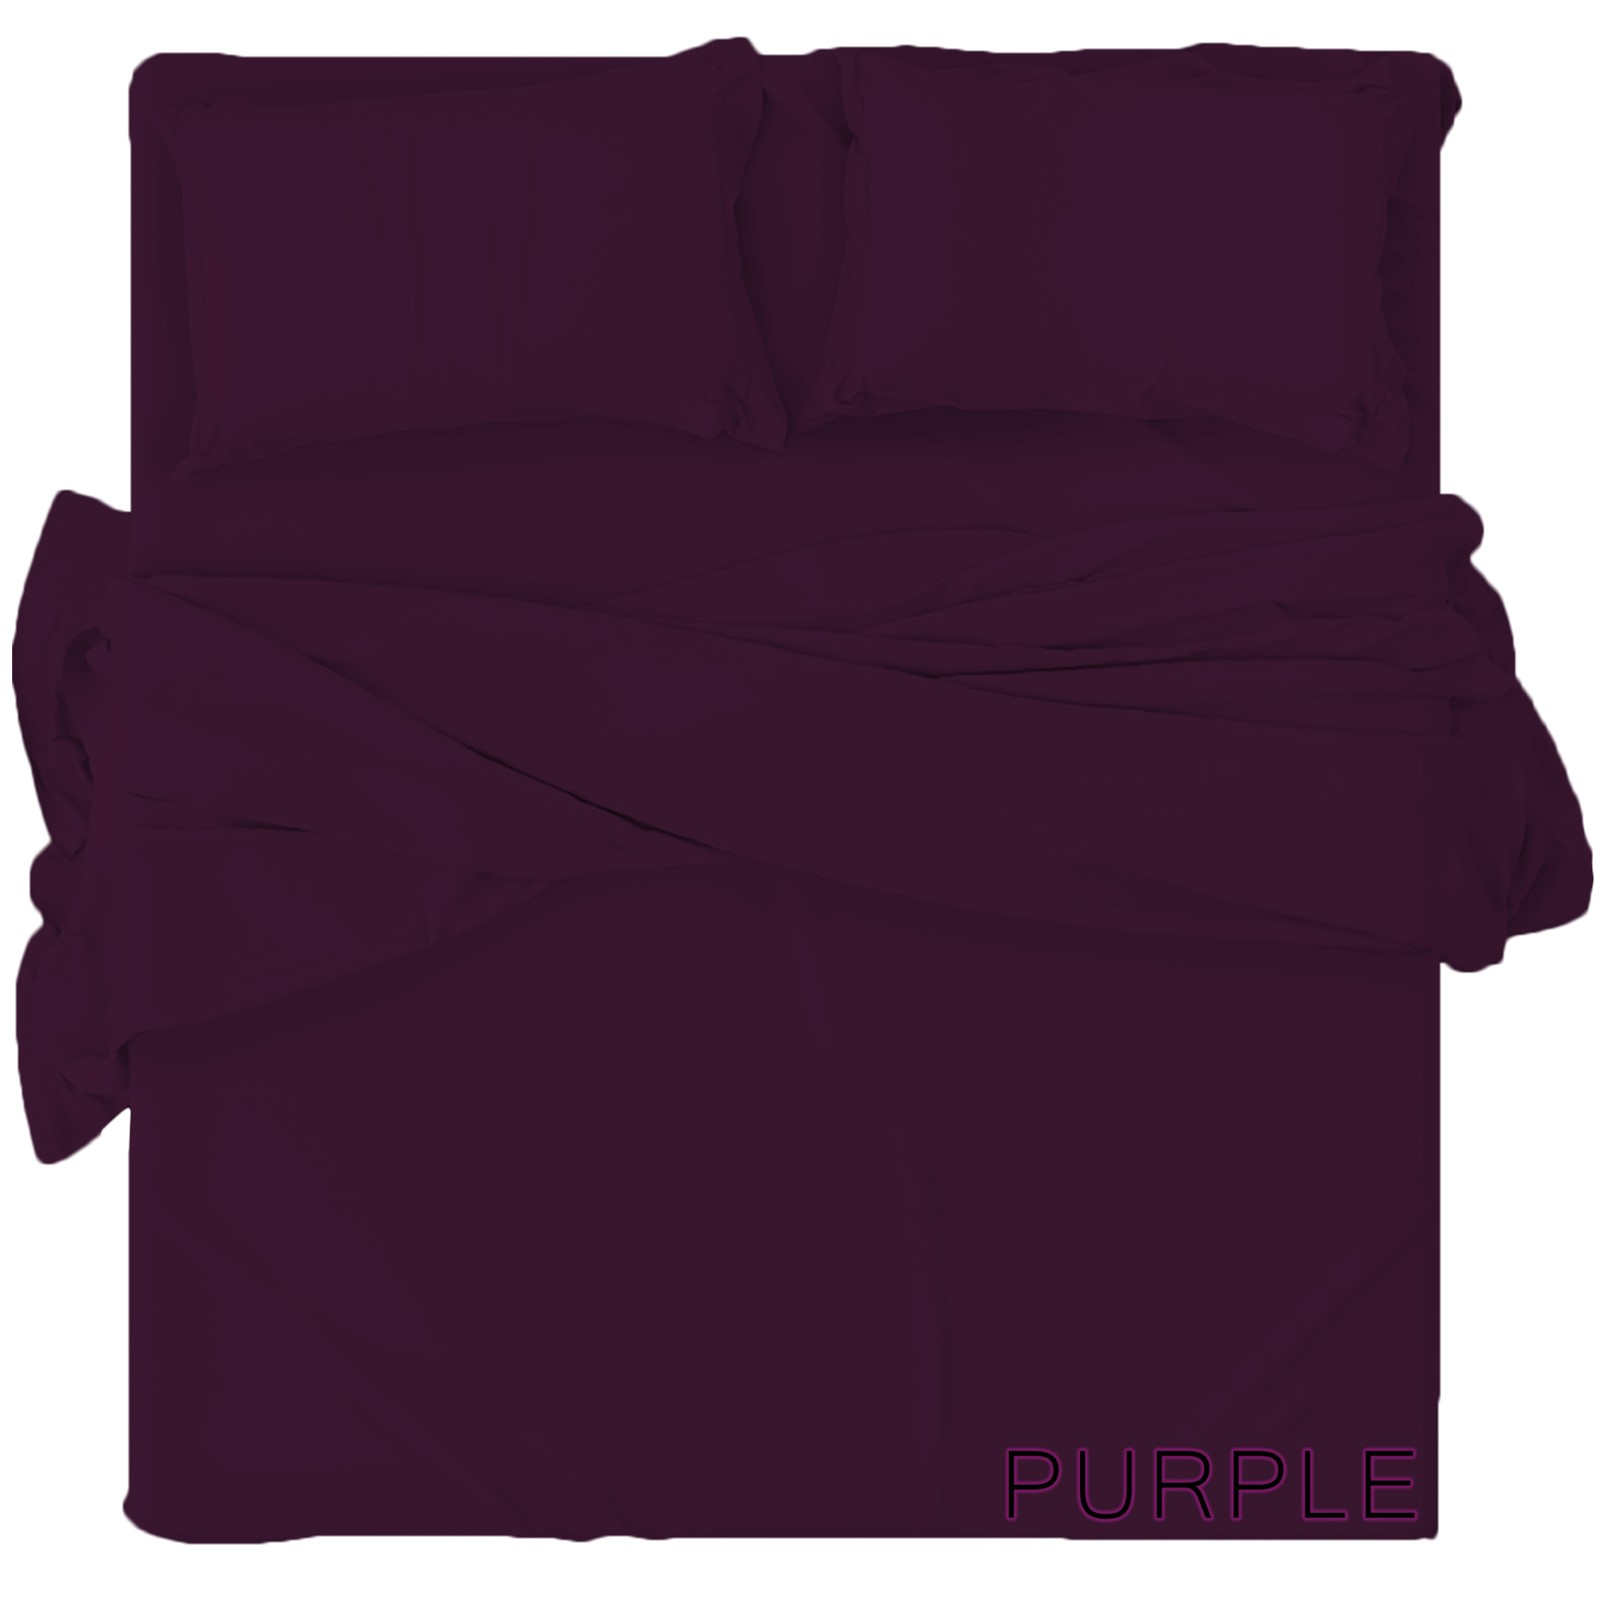 PLAIN FITTED BED SHEETS DYED 100% POLYCOTTON SINGLE DOUBLE